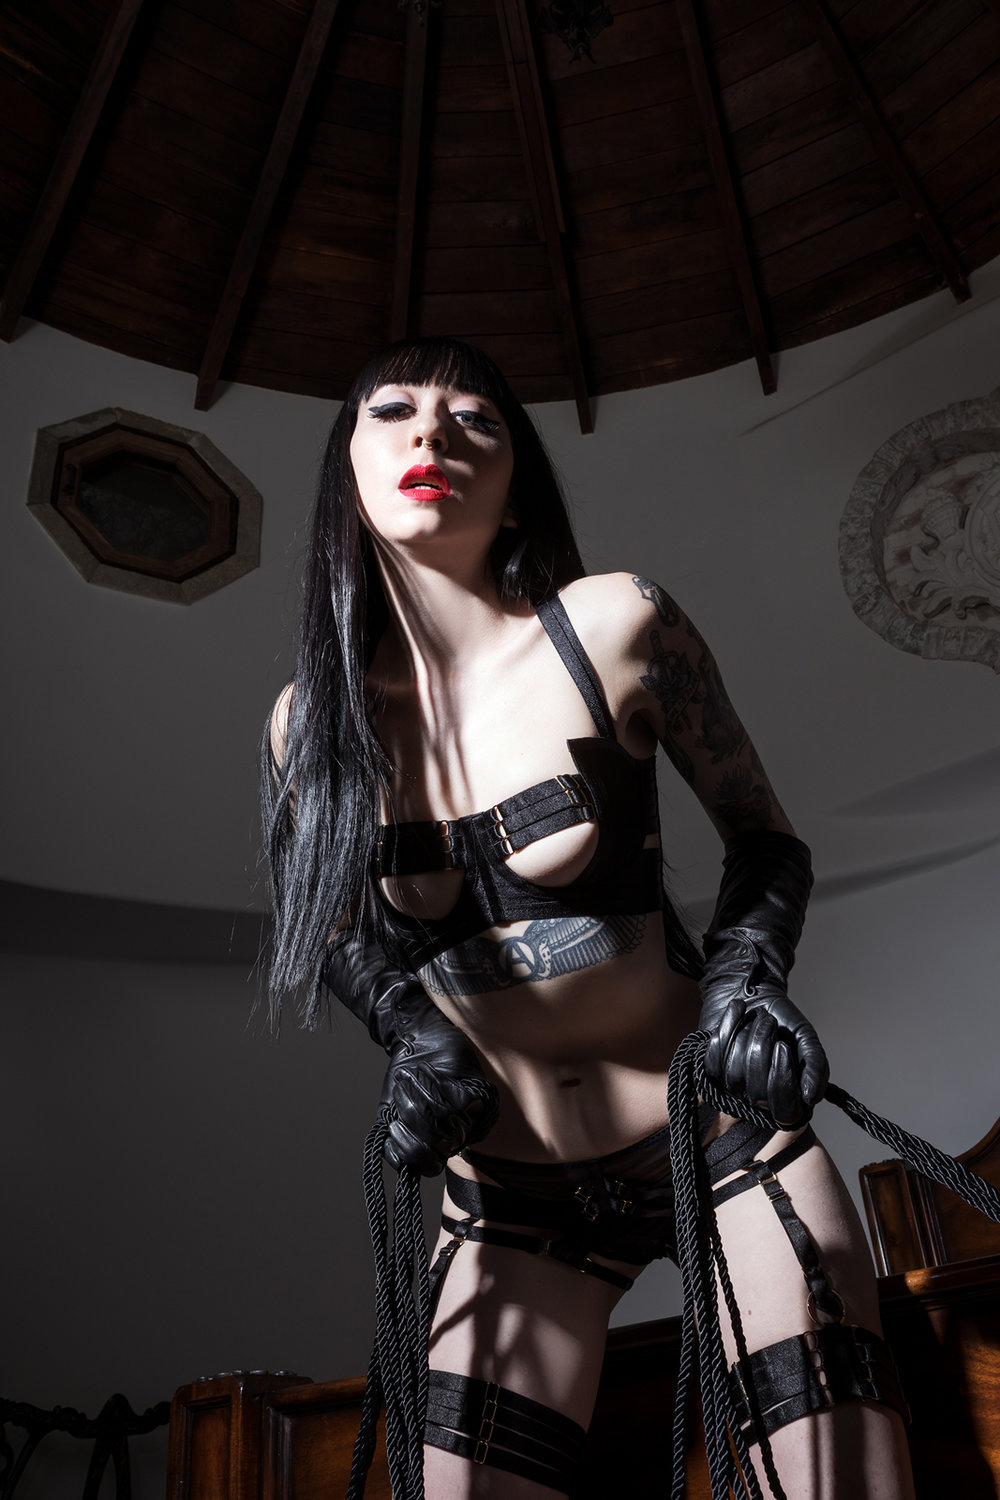 Mistress_Ramona_Ryder_SF_San_Francisco_Escort_Dominatrix_Domme_Rope_Bondage_Submission_Slave_Training_Leather_Gloves.jpg